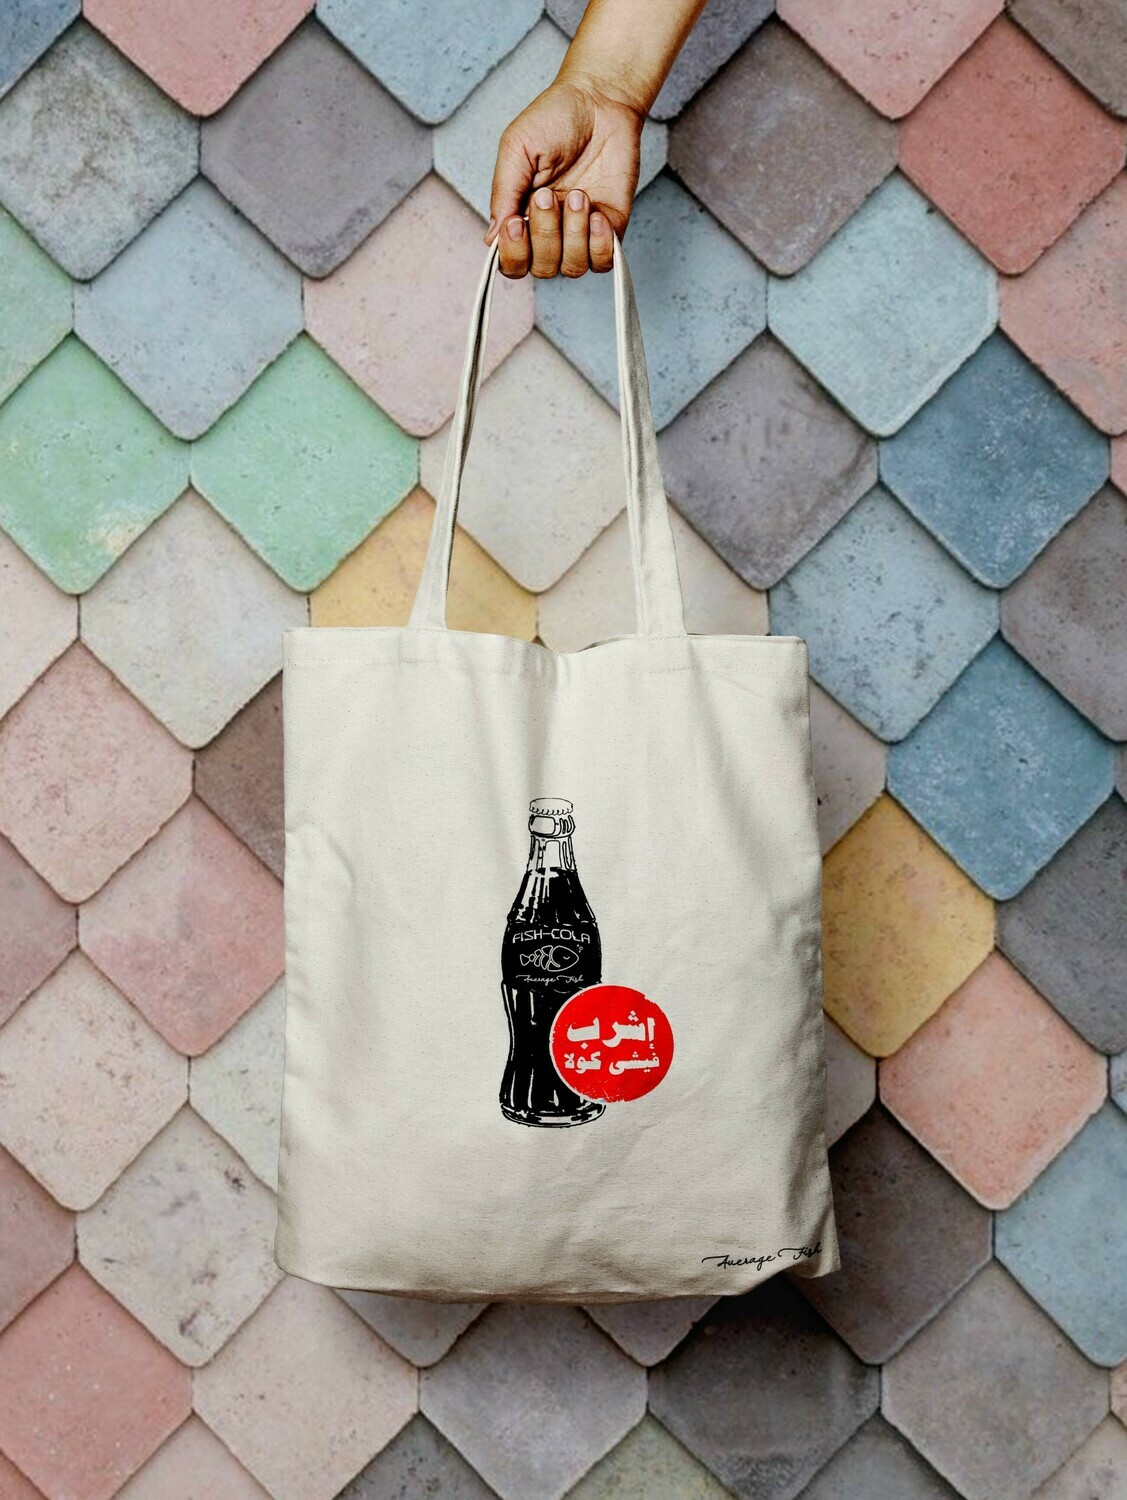 Fish-Cola Tote Bag